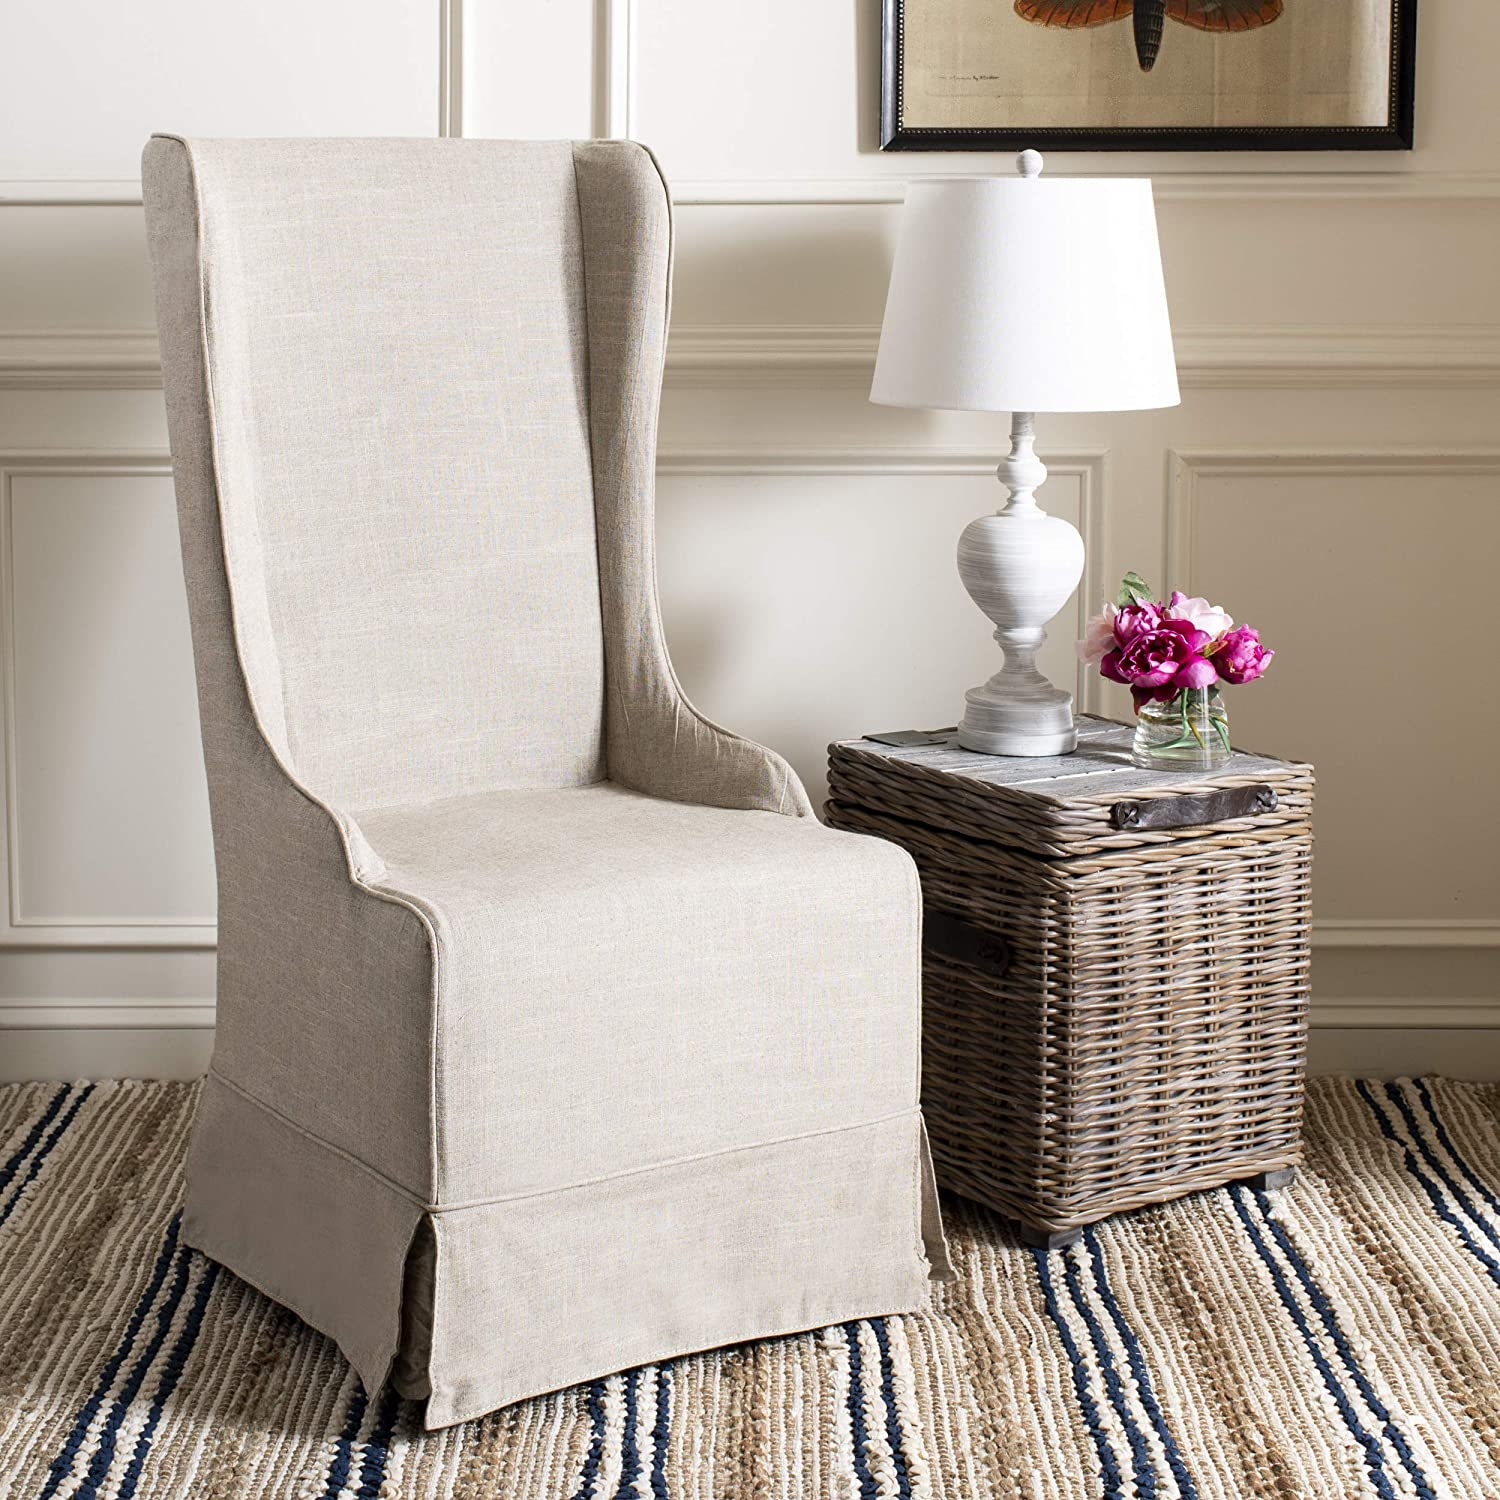 Safavieh Mercer Collection Becall Dining Chair, Hemp